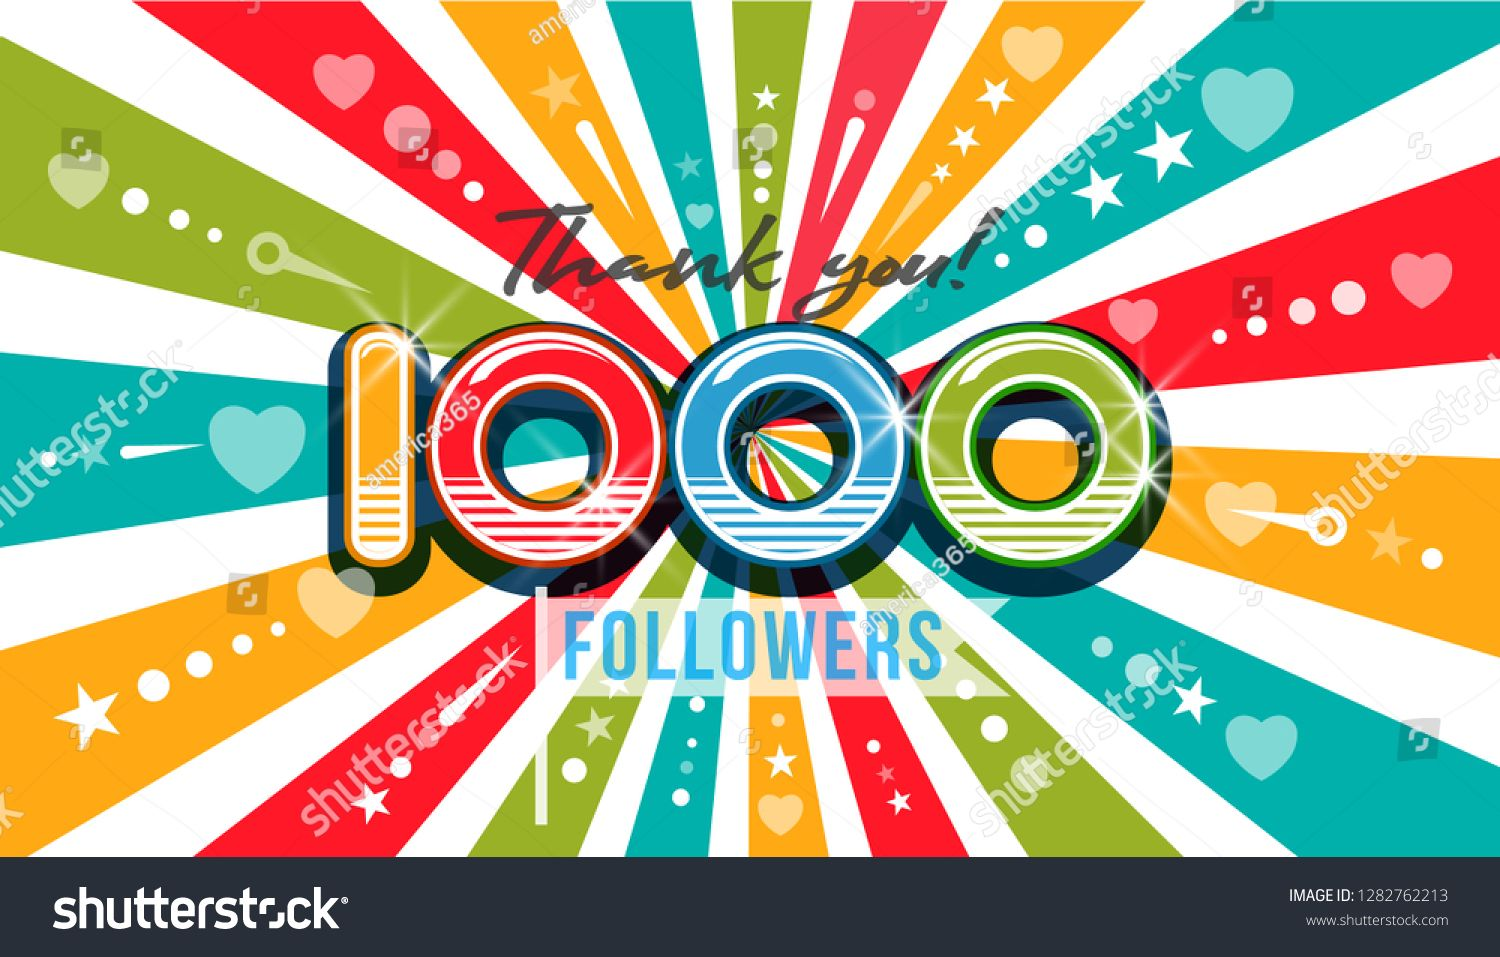 1000 One Thousand Followers Thank You background